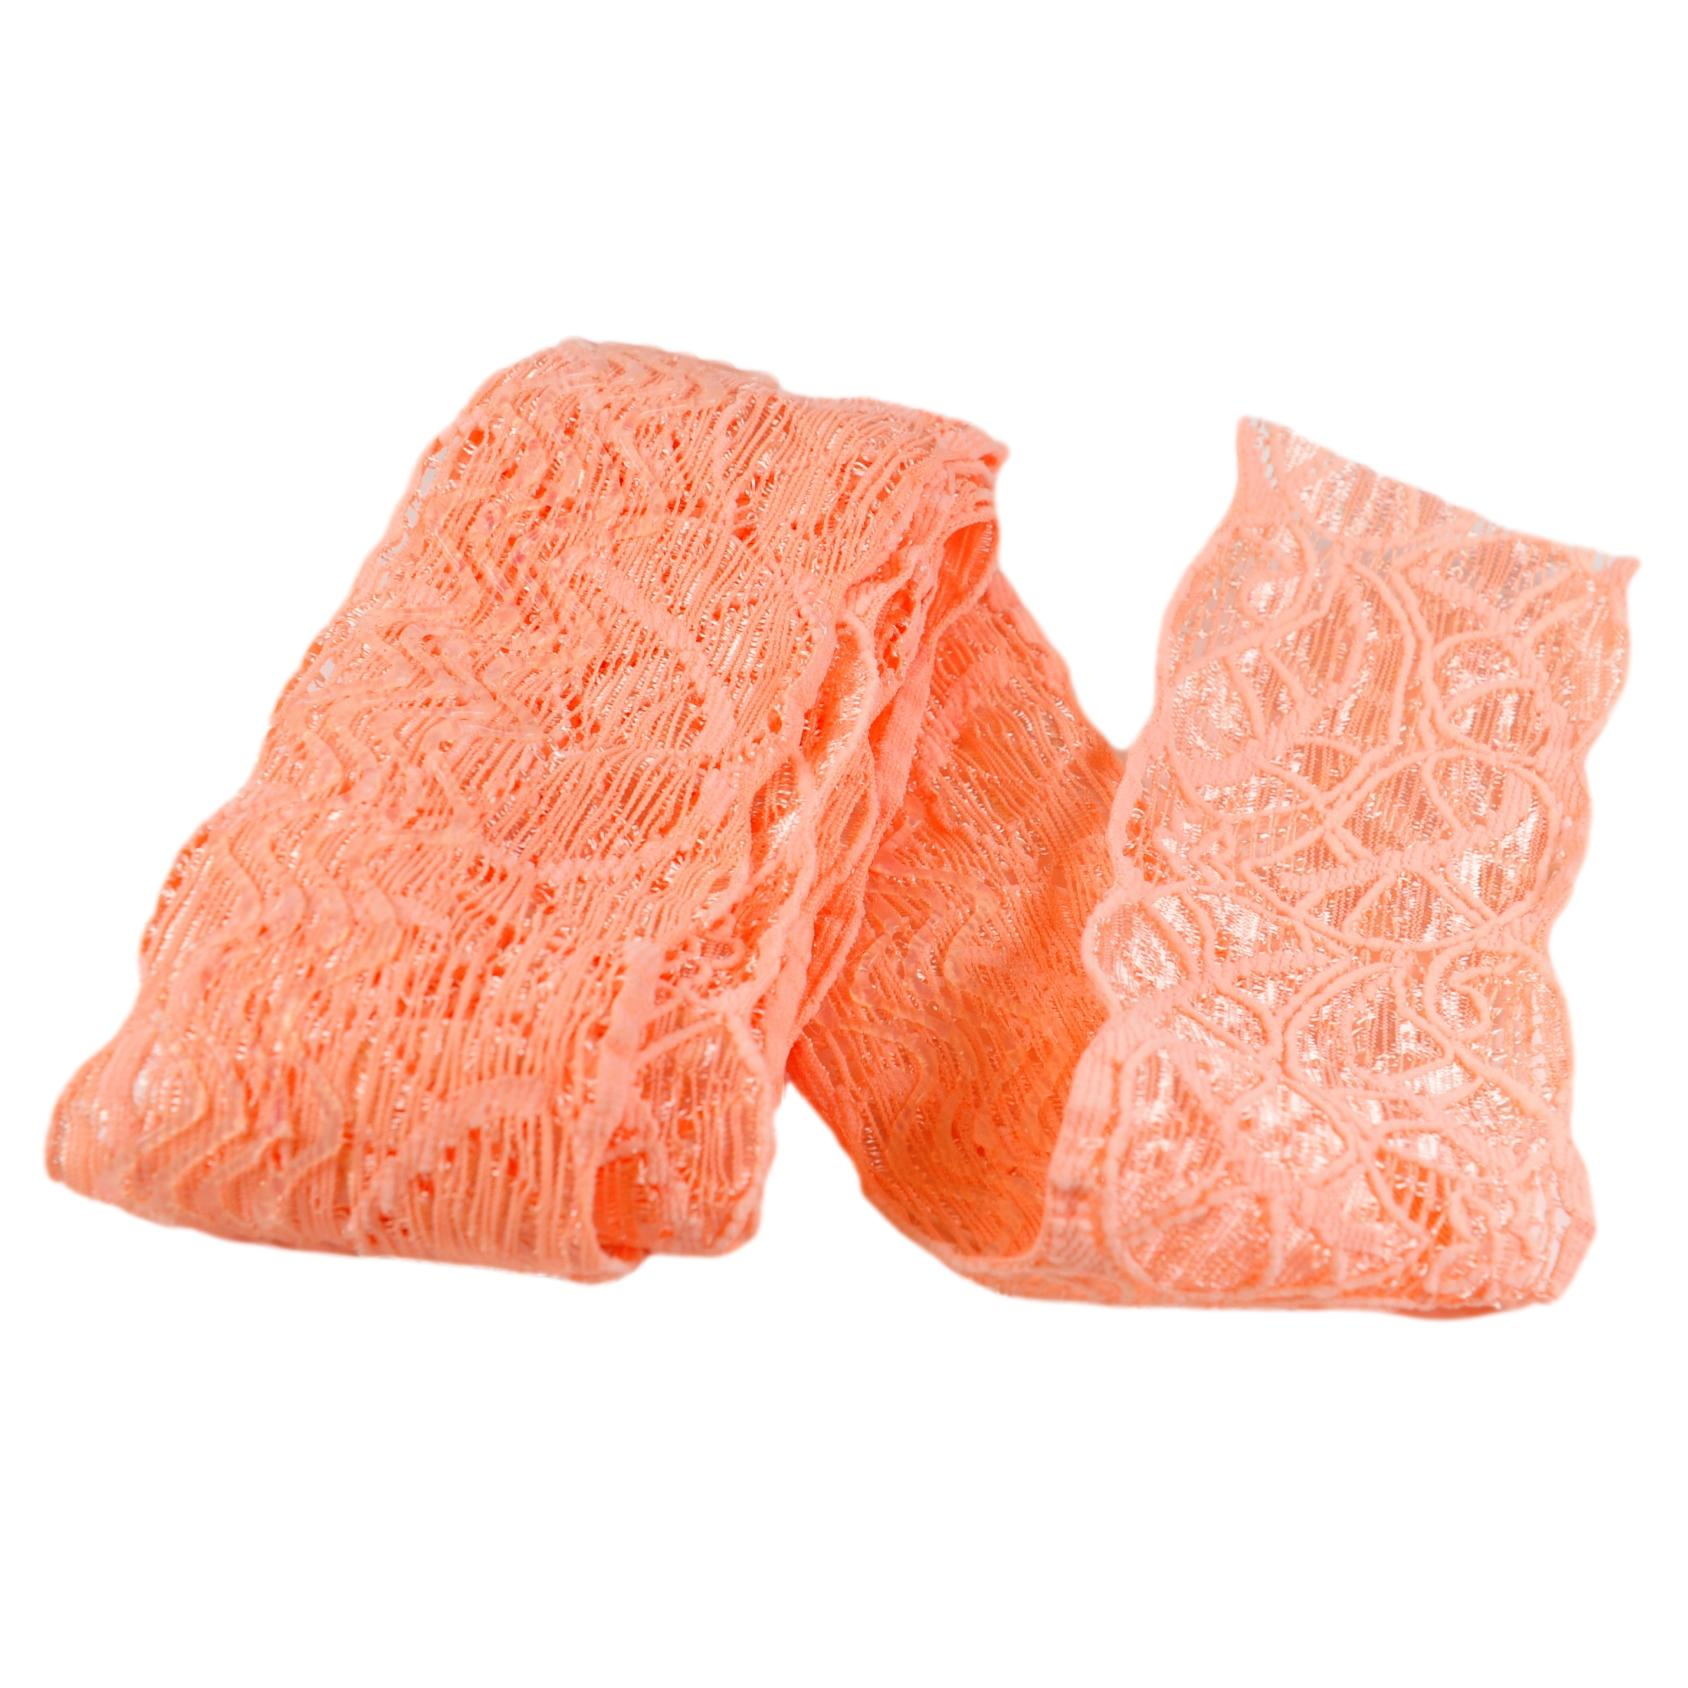 "Floral Bright Coral Peach Stretch Lace is 2"" Wide with Silicone"